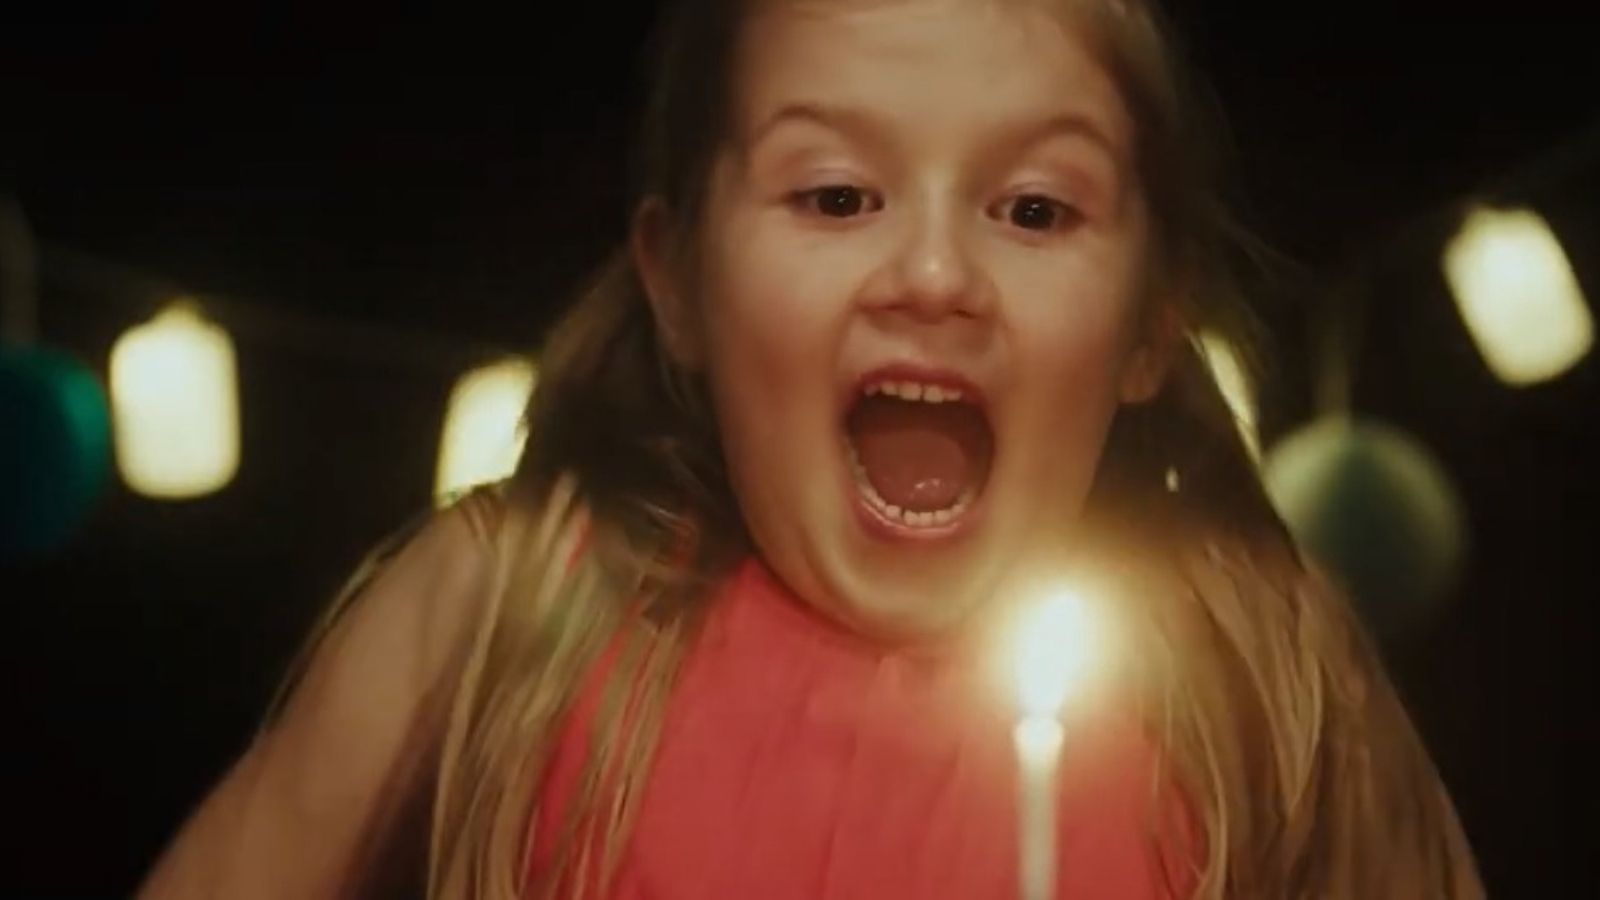 Girl blows out birthday candle